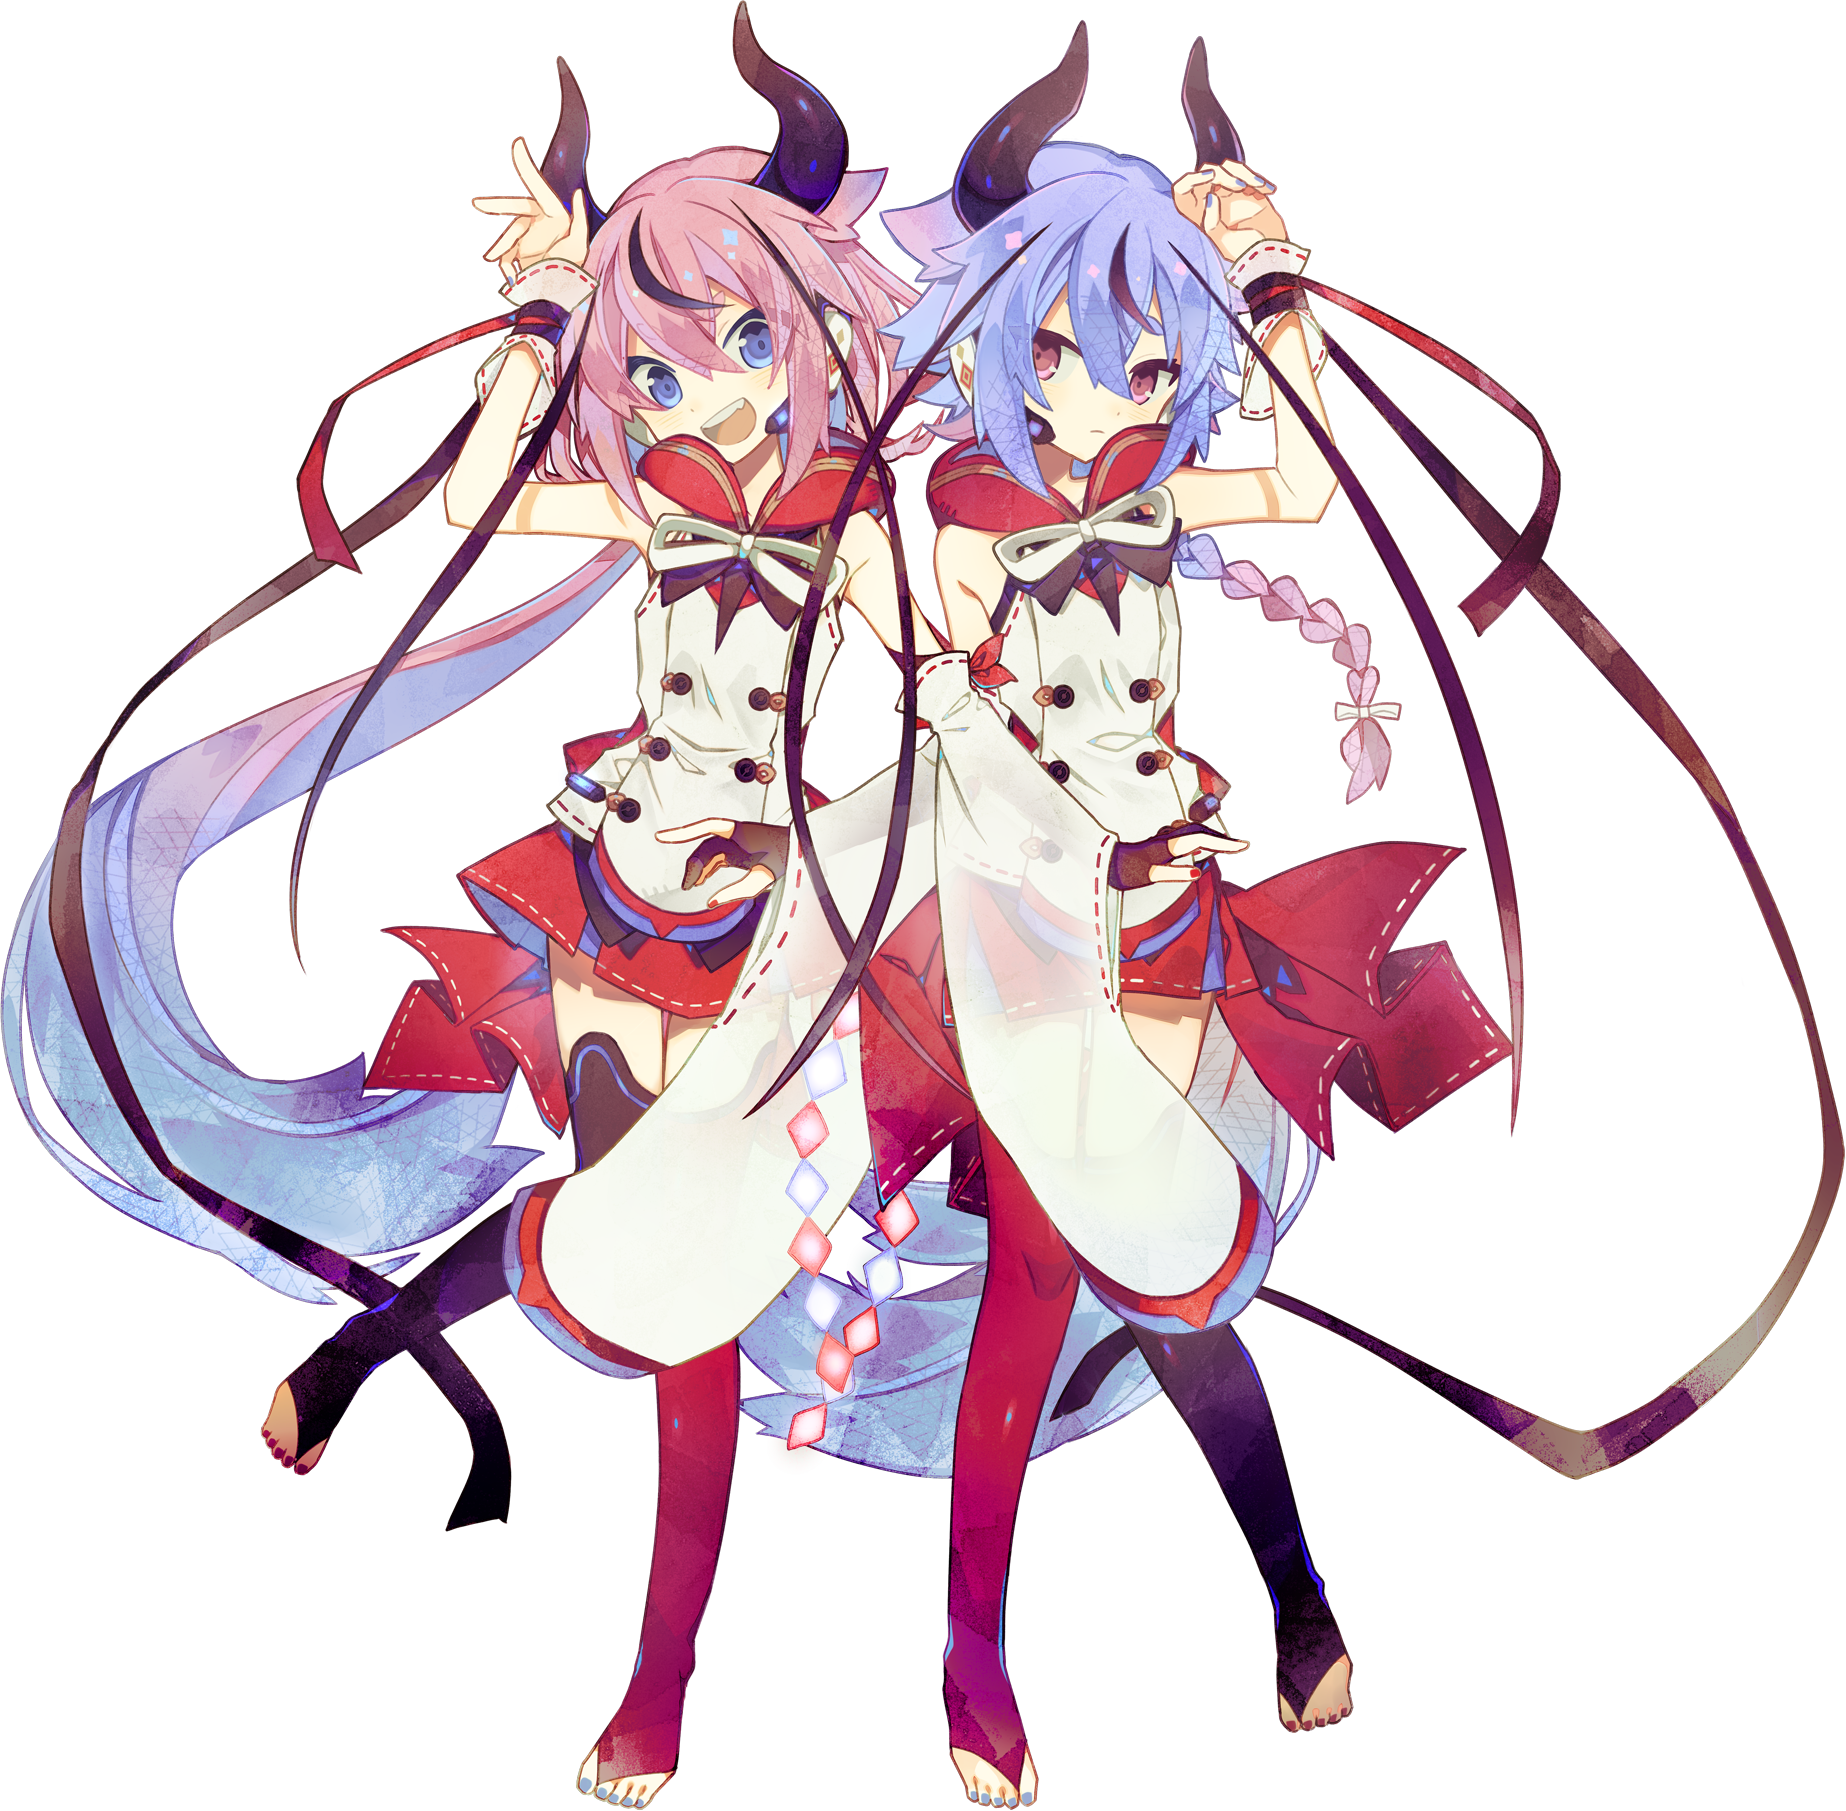 MEIKA Hime & Mikoto | Vocaloid Wiki | FANDOM powered by Wikia